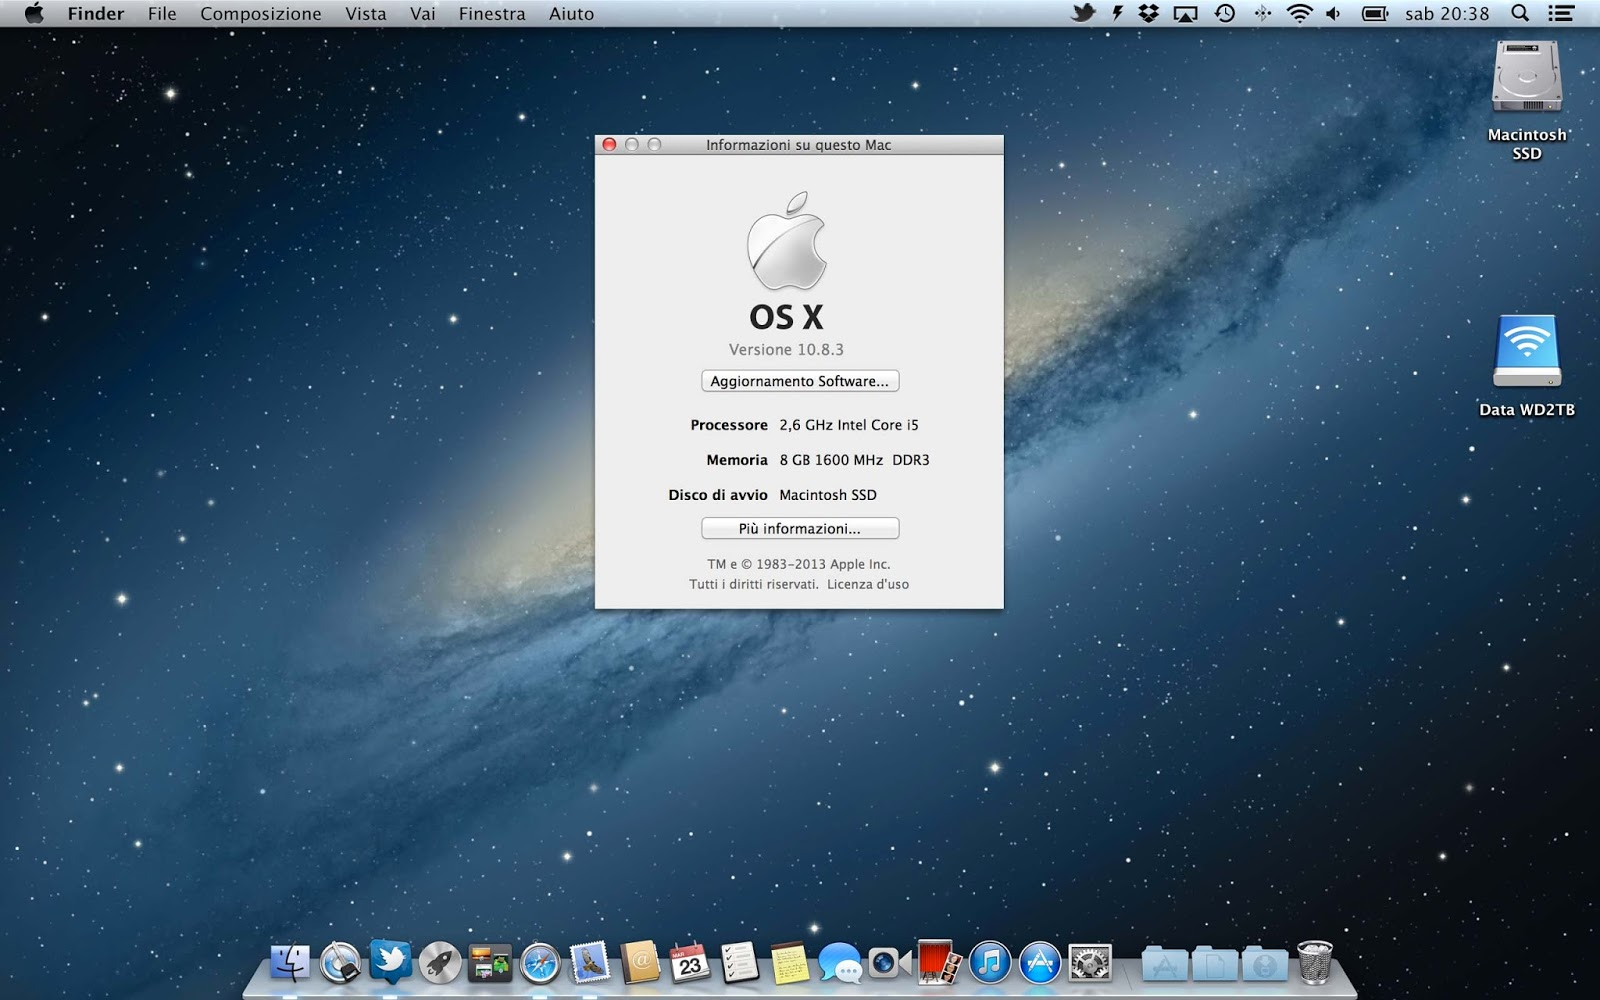 Download mac os x mountain lion 10 8 iso for free for Raumgestaltung mac os x